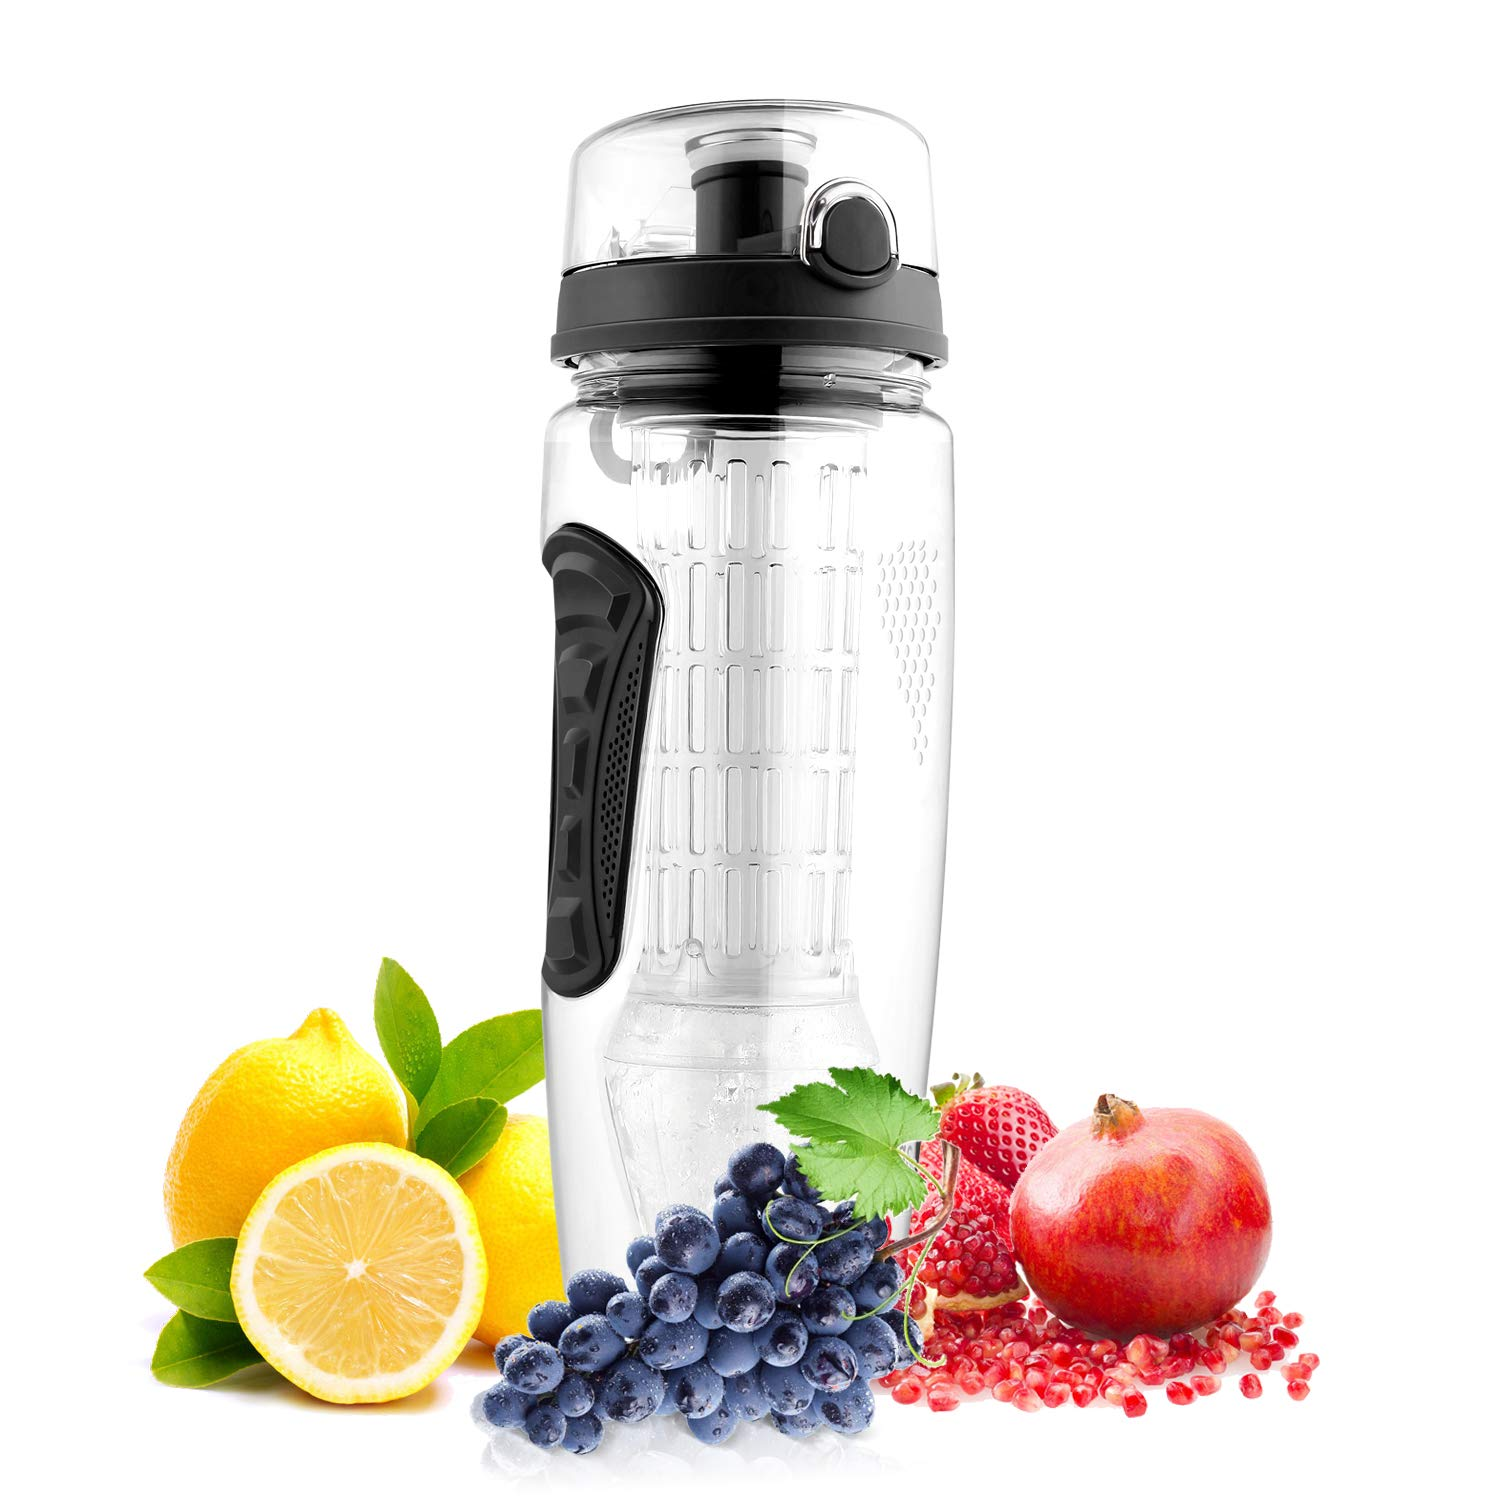 amzdeal Fruit Infuser Water Bottle 1L / 32 Oz Sports Water Bottle BPA Free with Infusion Rod and Freezer Ice Ball Leak Proof and Non-Slip Design for Outdoor School Office - Black